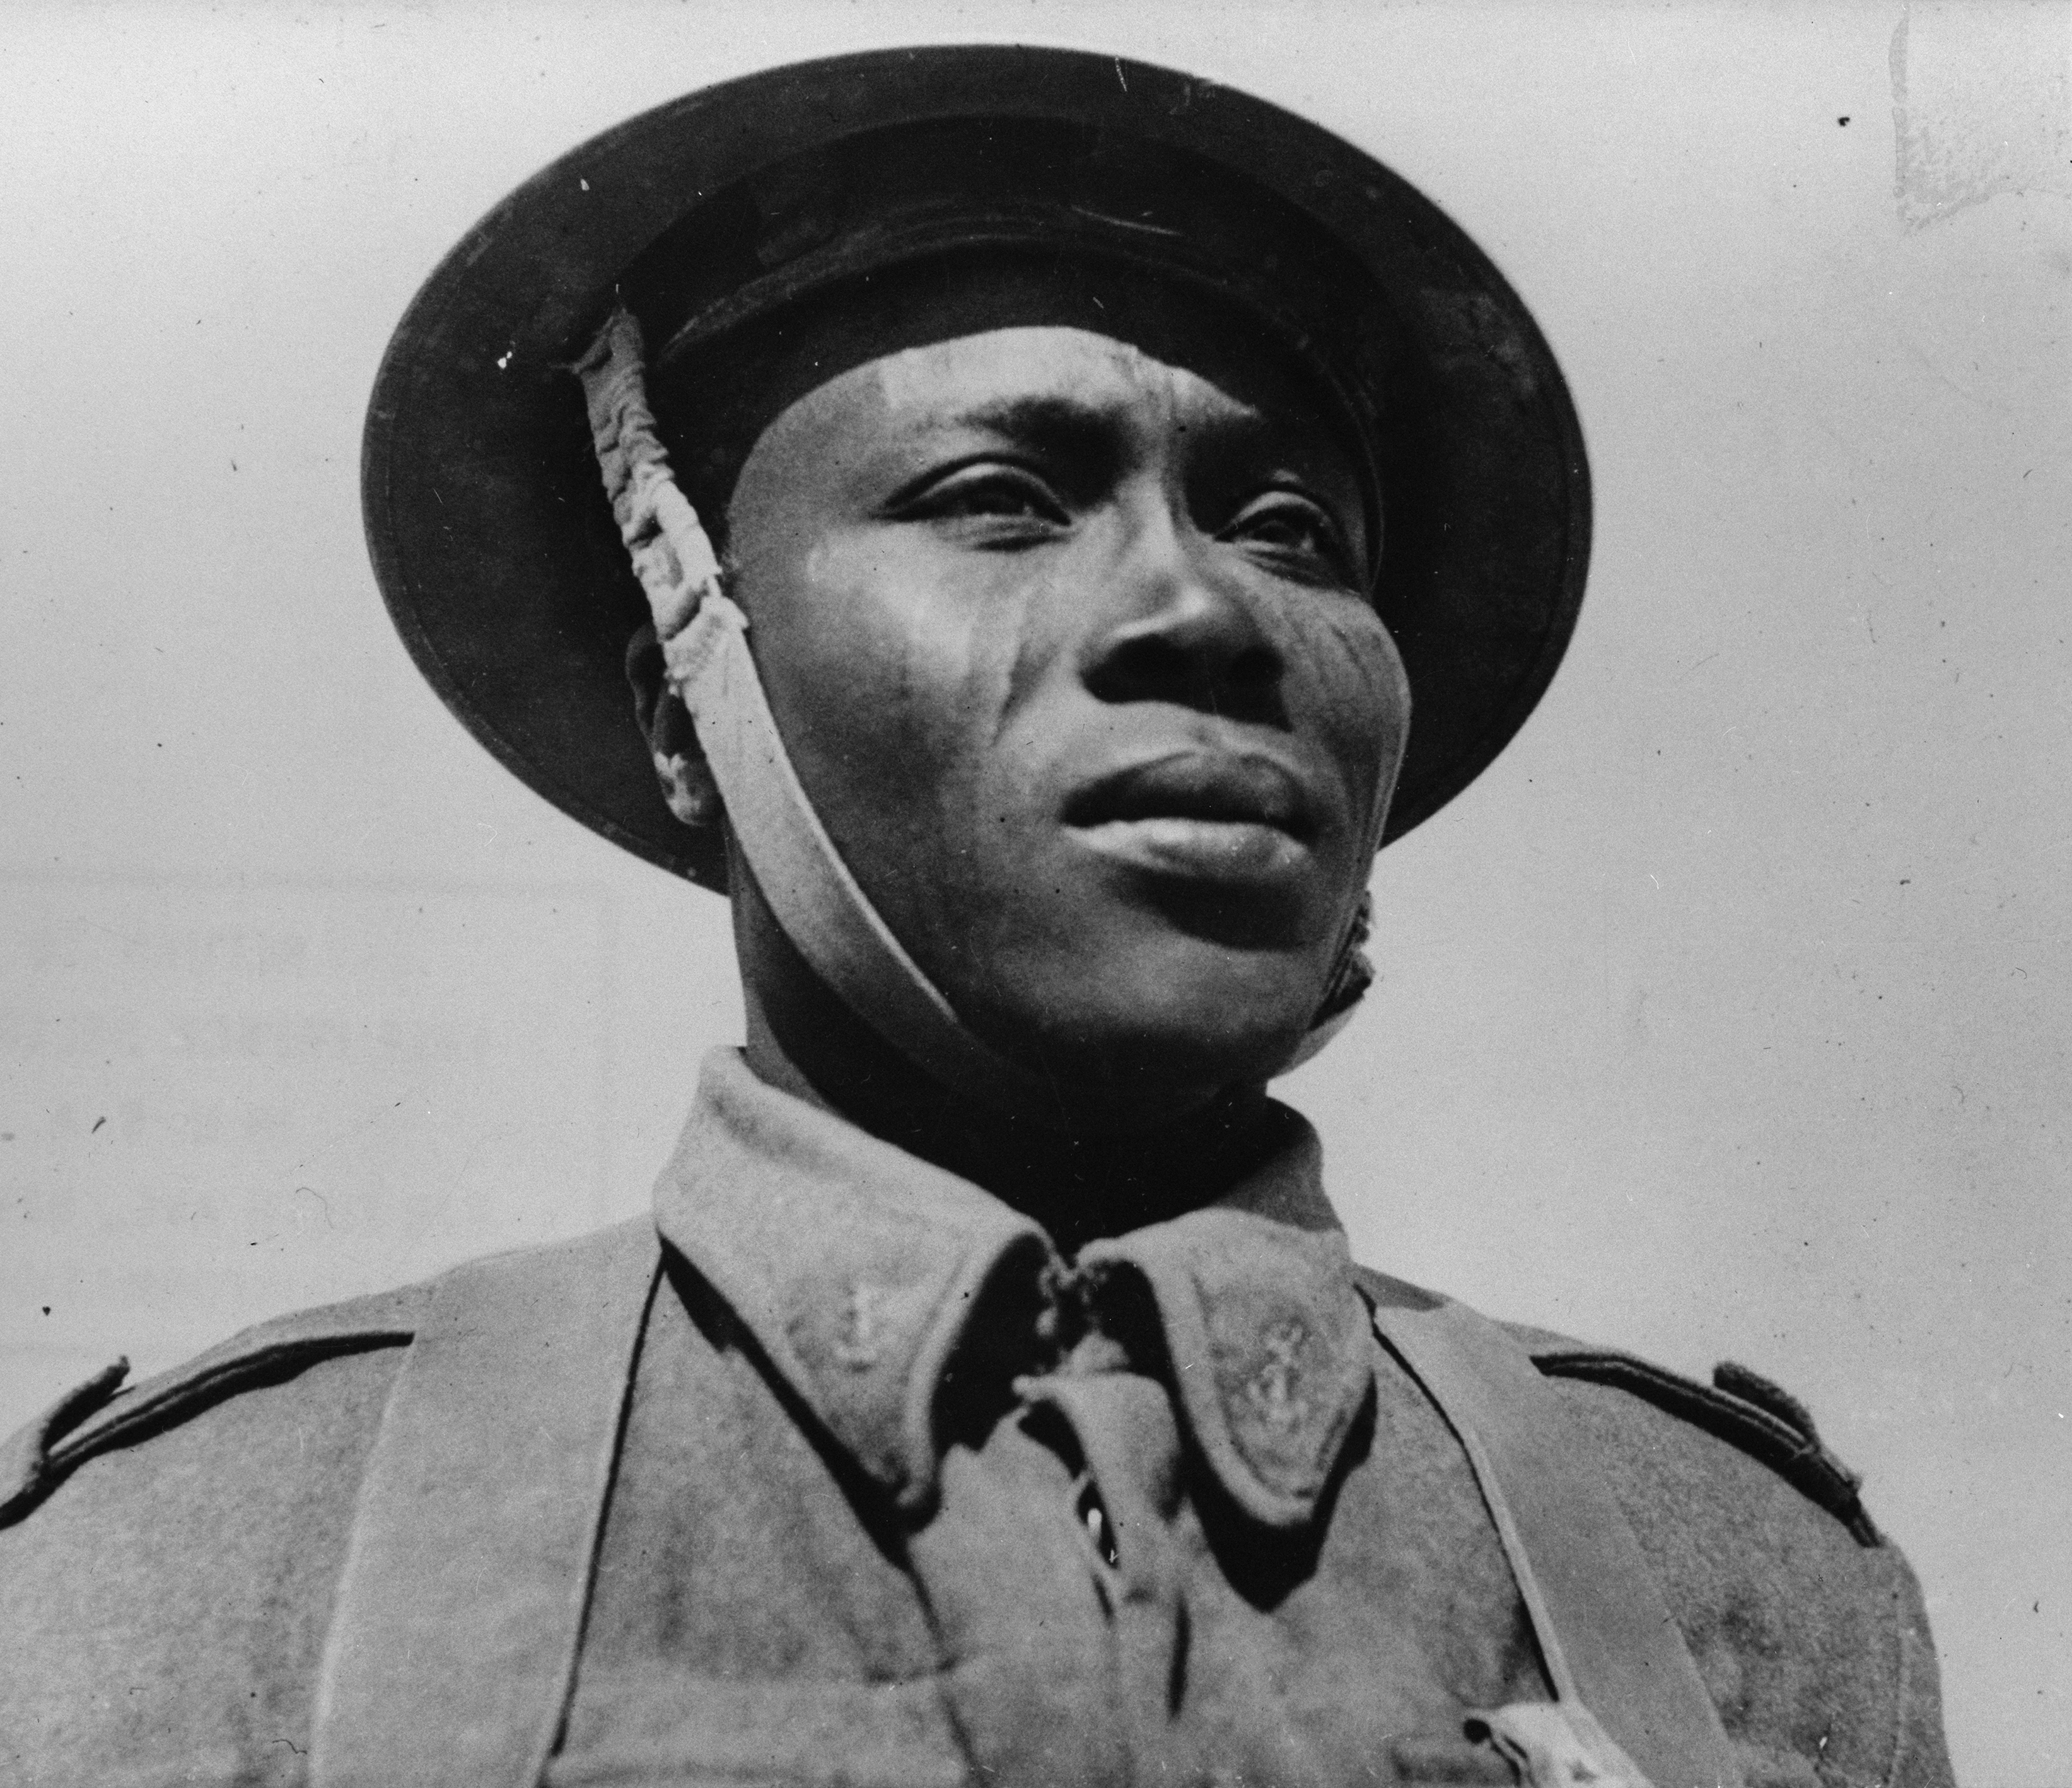 Description chadian soldier of wwii